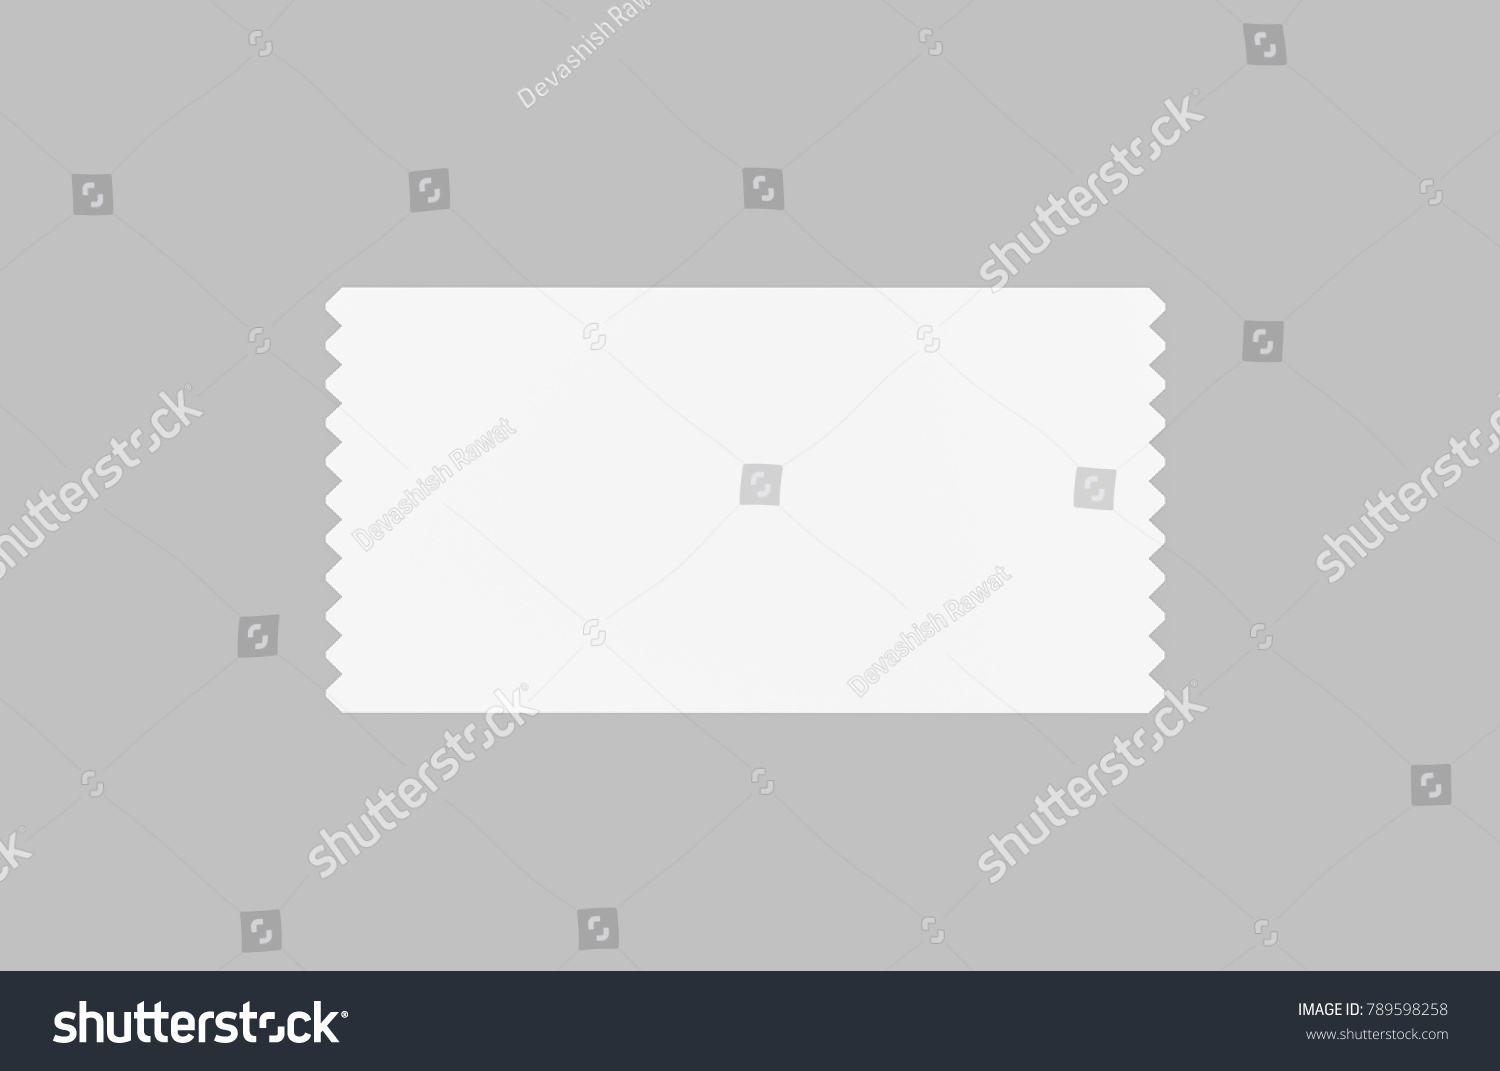 Event Ticket Movie Ticket Template On Stock Illustration 789598258 ...